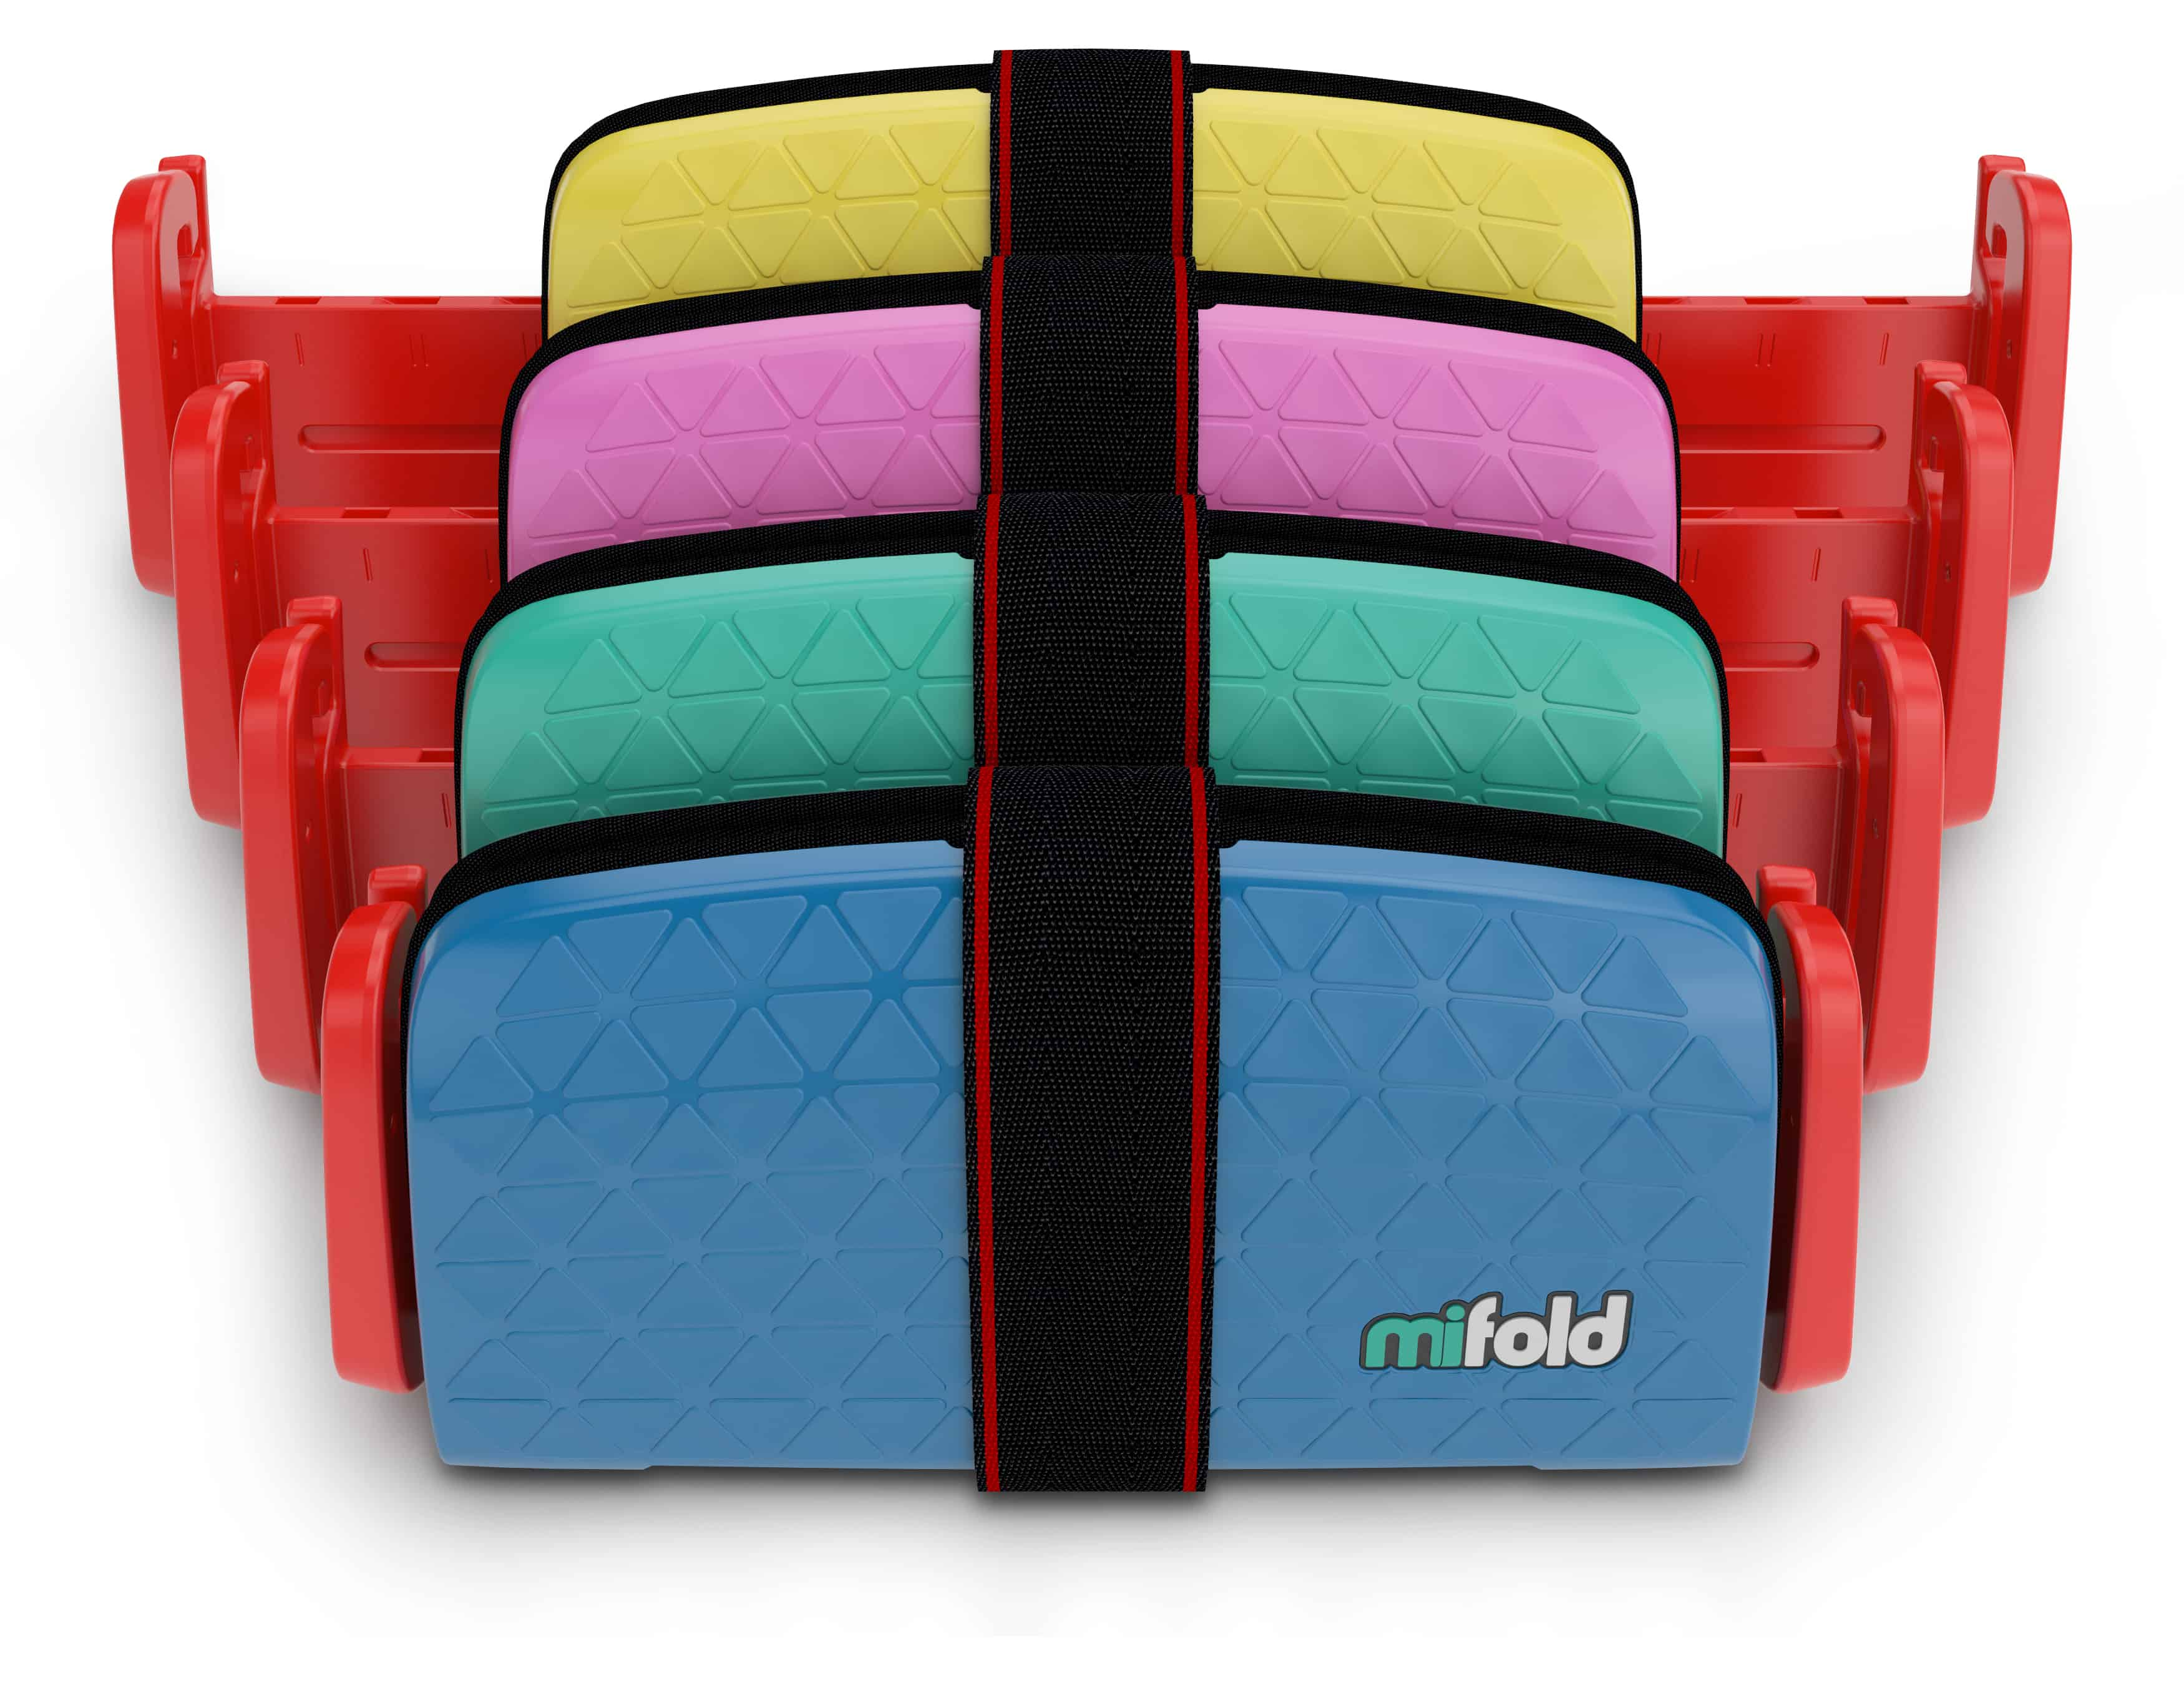 Grab and Go Carseat from mifold